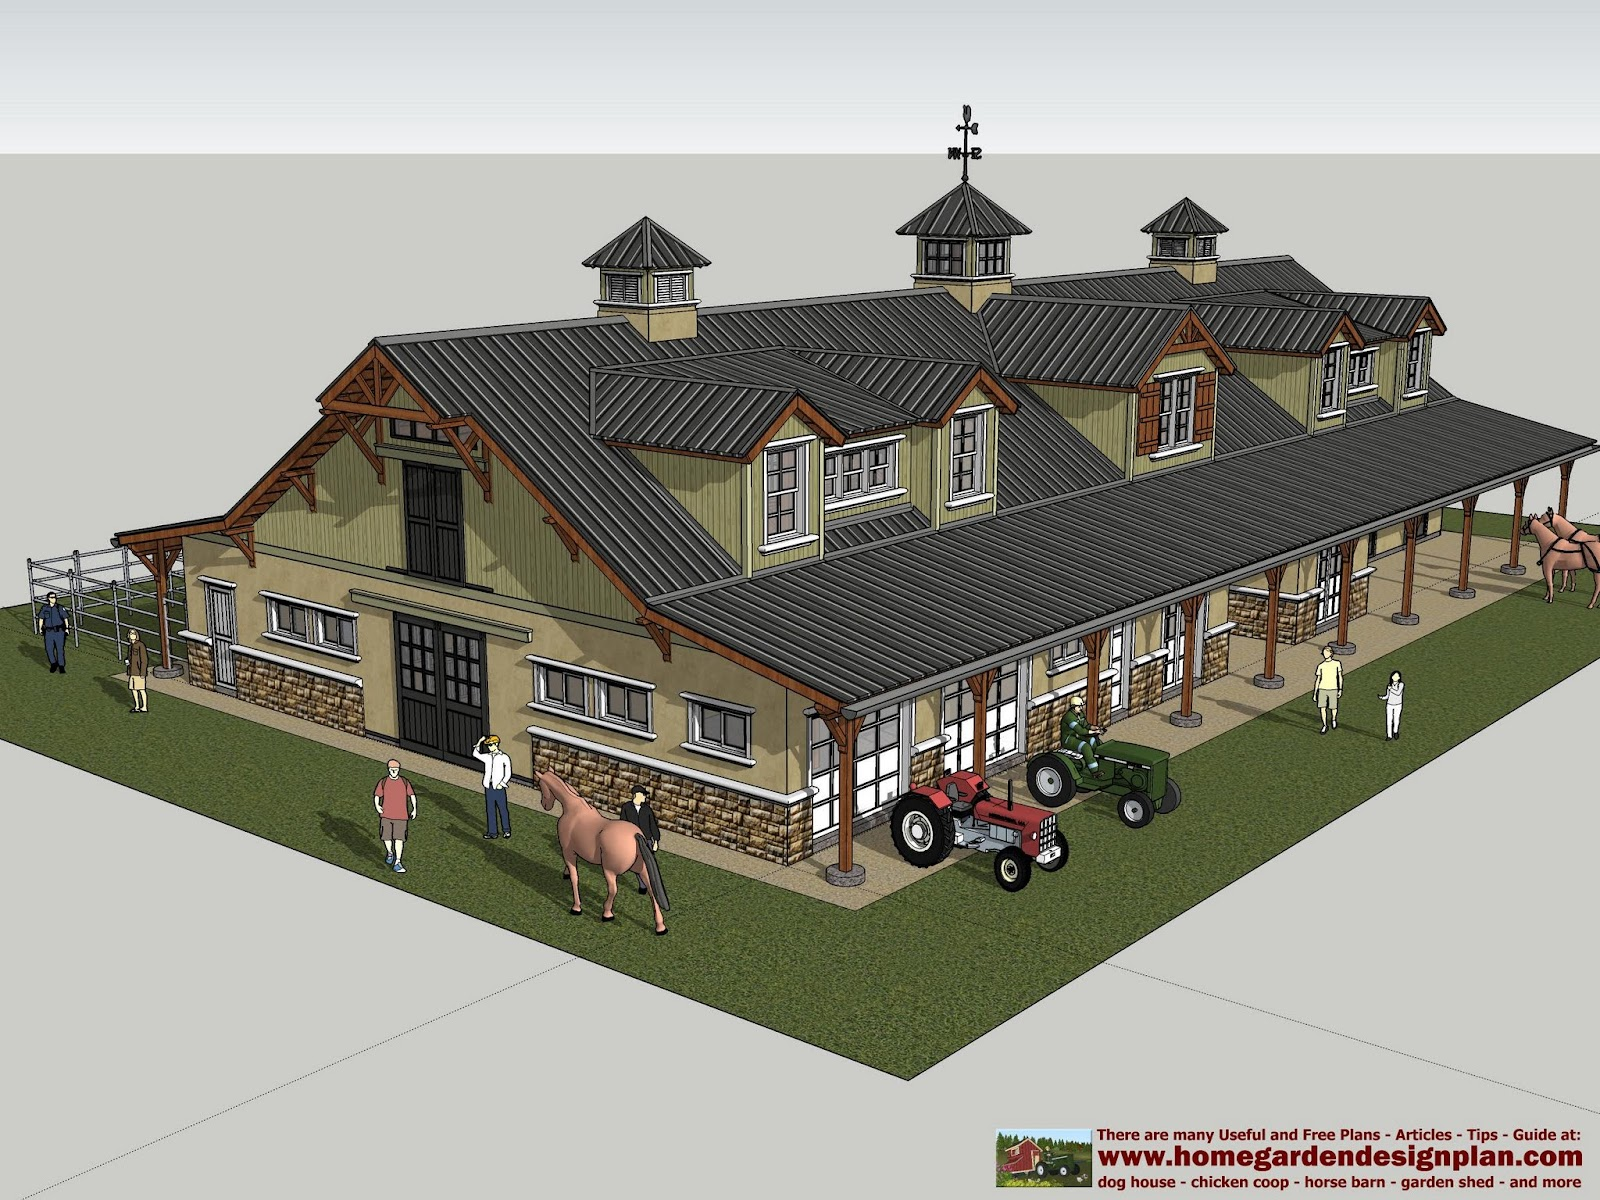 Home garden plans hb100 horse barn plans horse barn for Horse barn layouts floor plans